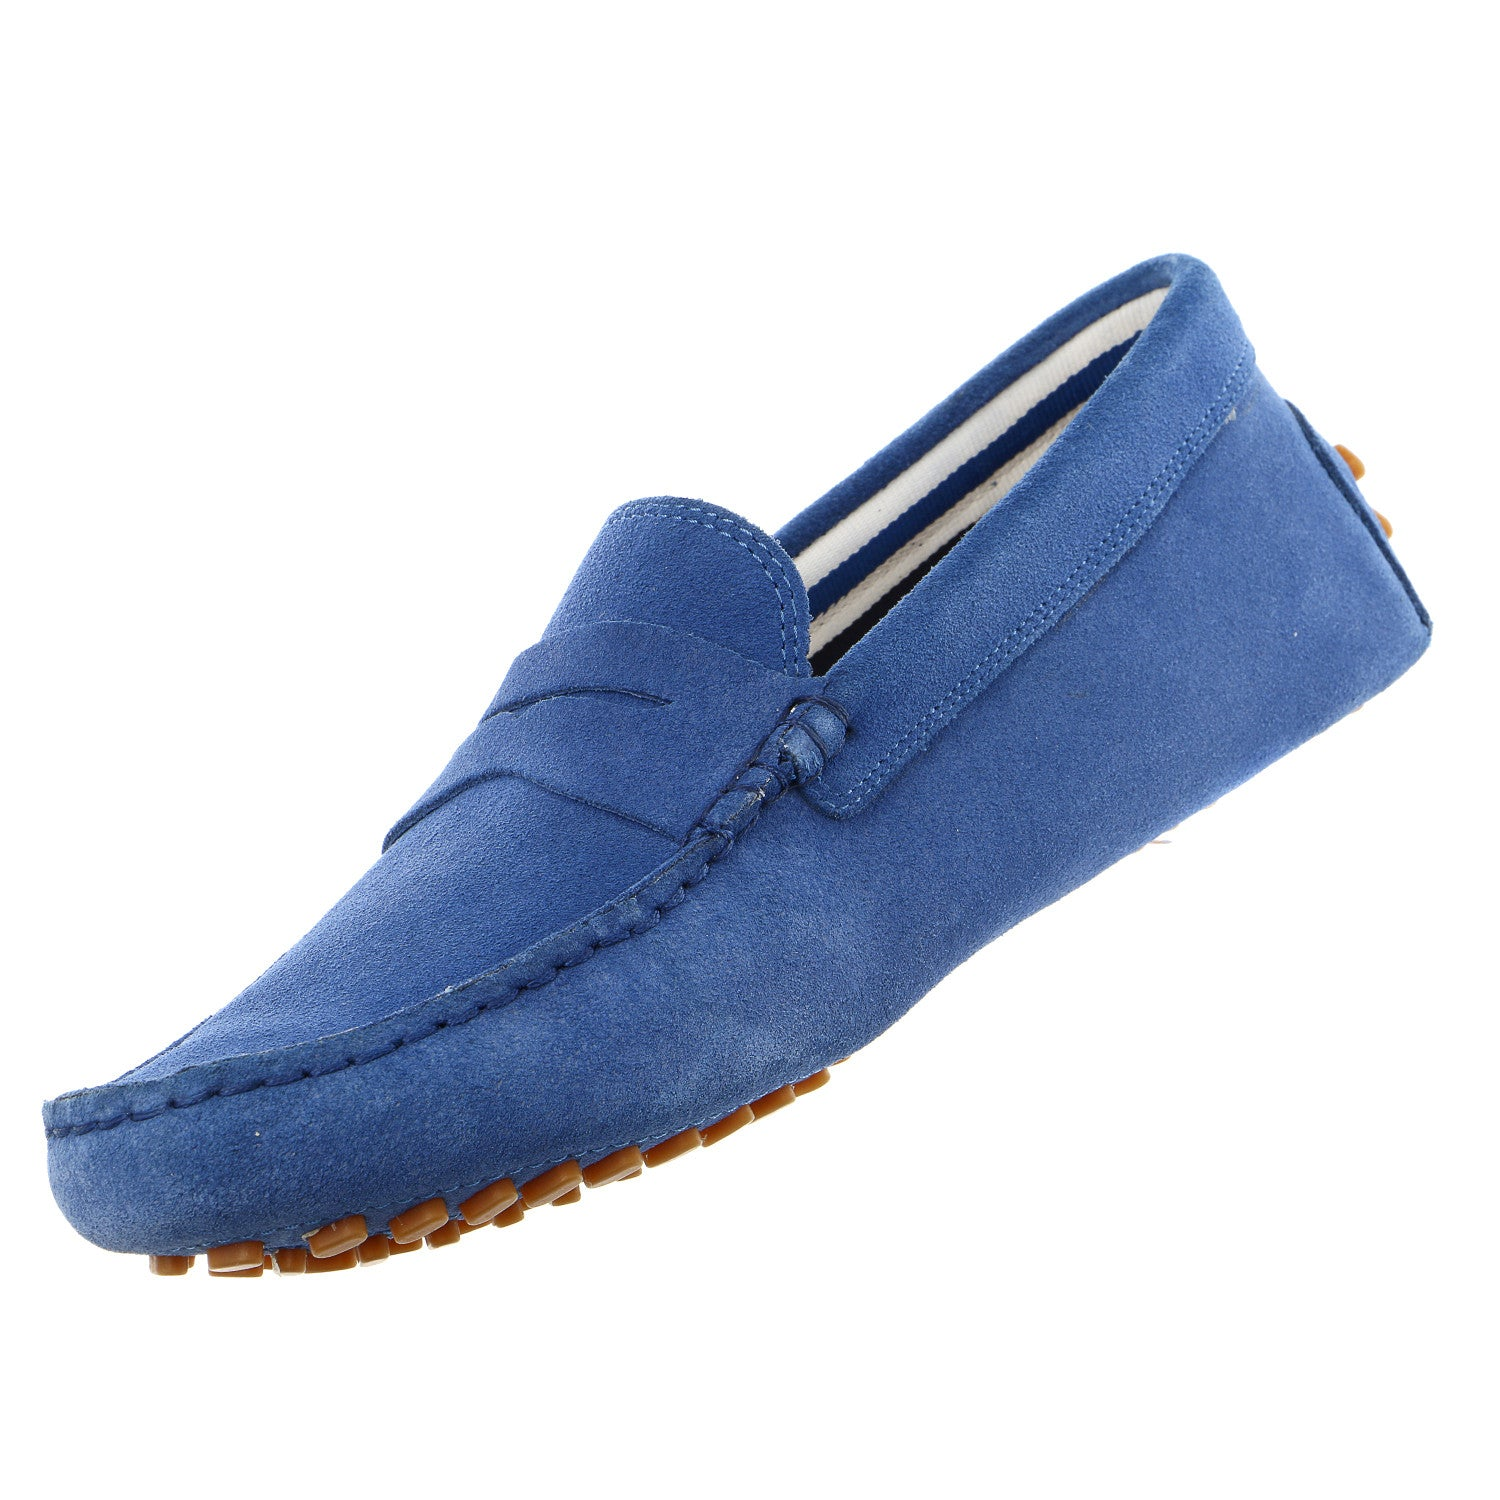 4600b838f9d4d1 Lacoste CONCOURS 116 1 Slip-On Loafer - Men s - Shoplifestyle